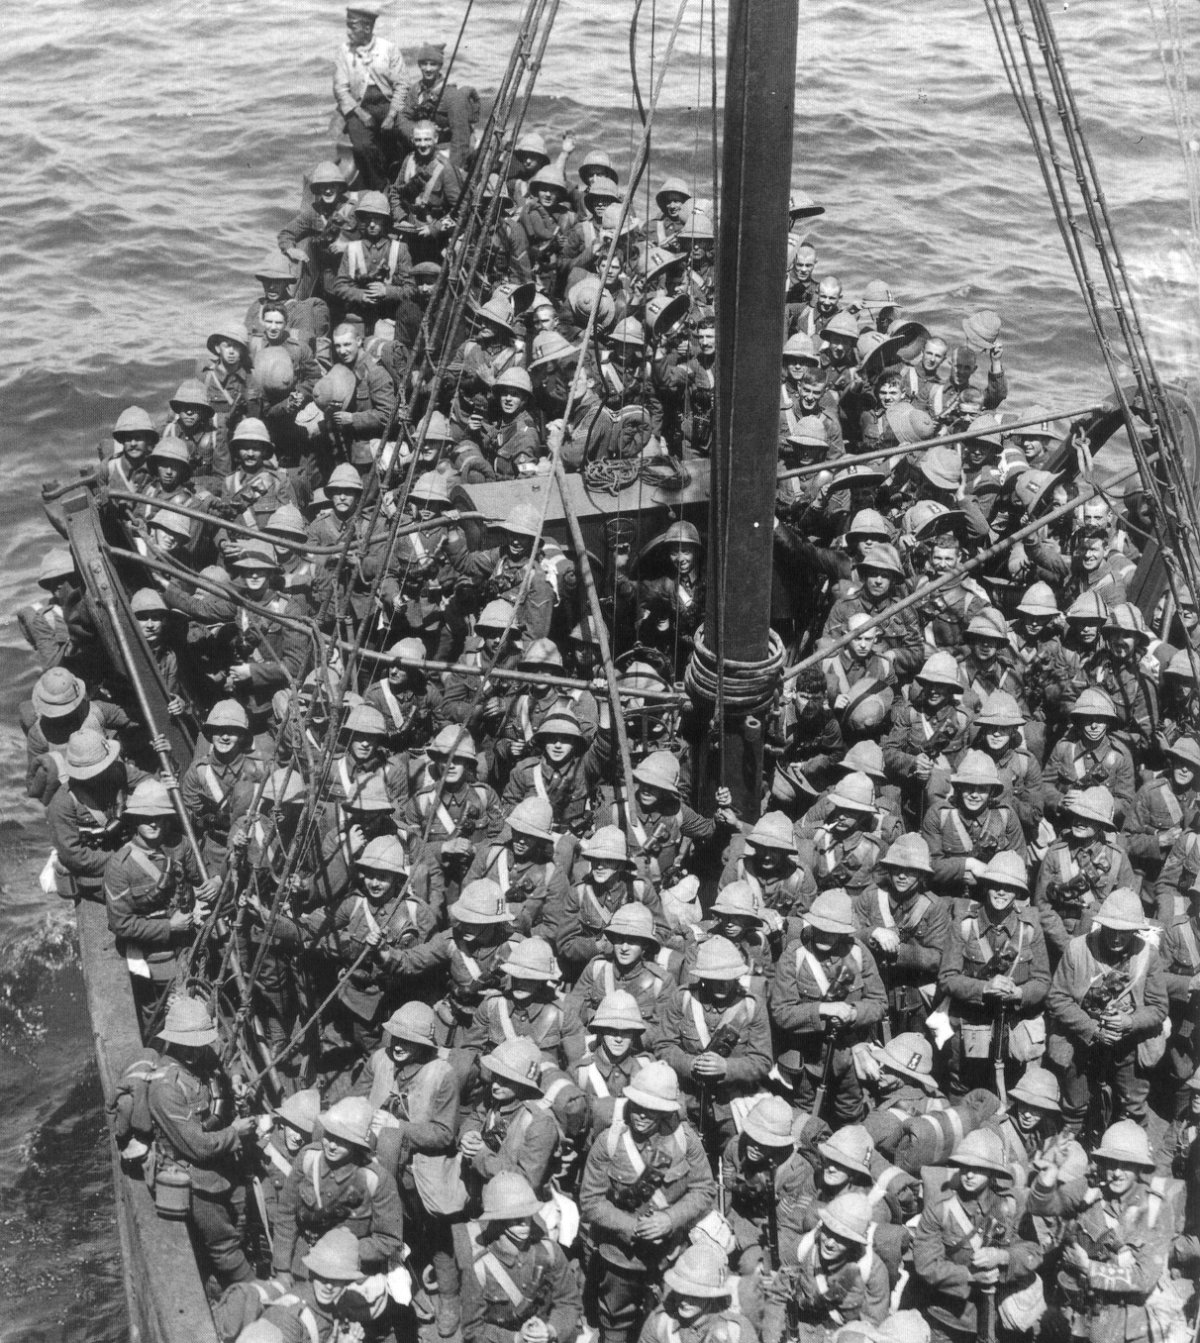 https://upload.wikimedia.org/wikipedia/commons/archive/6/6f/20050423032444!Lancashire_Fusiliers_boat_Gallipoli_May_1915.jpg